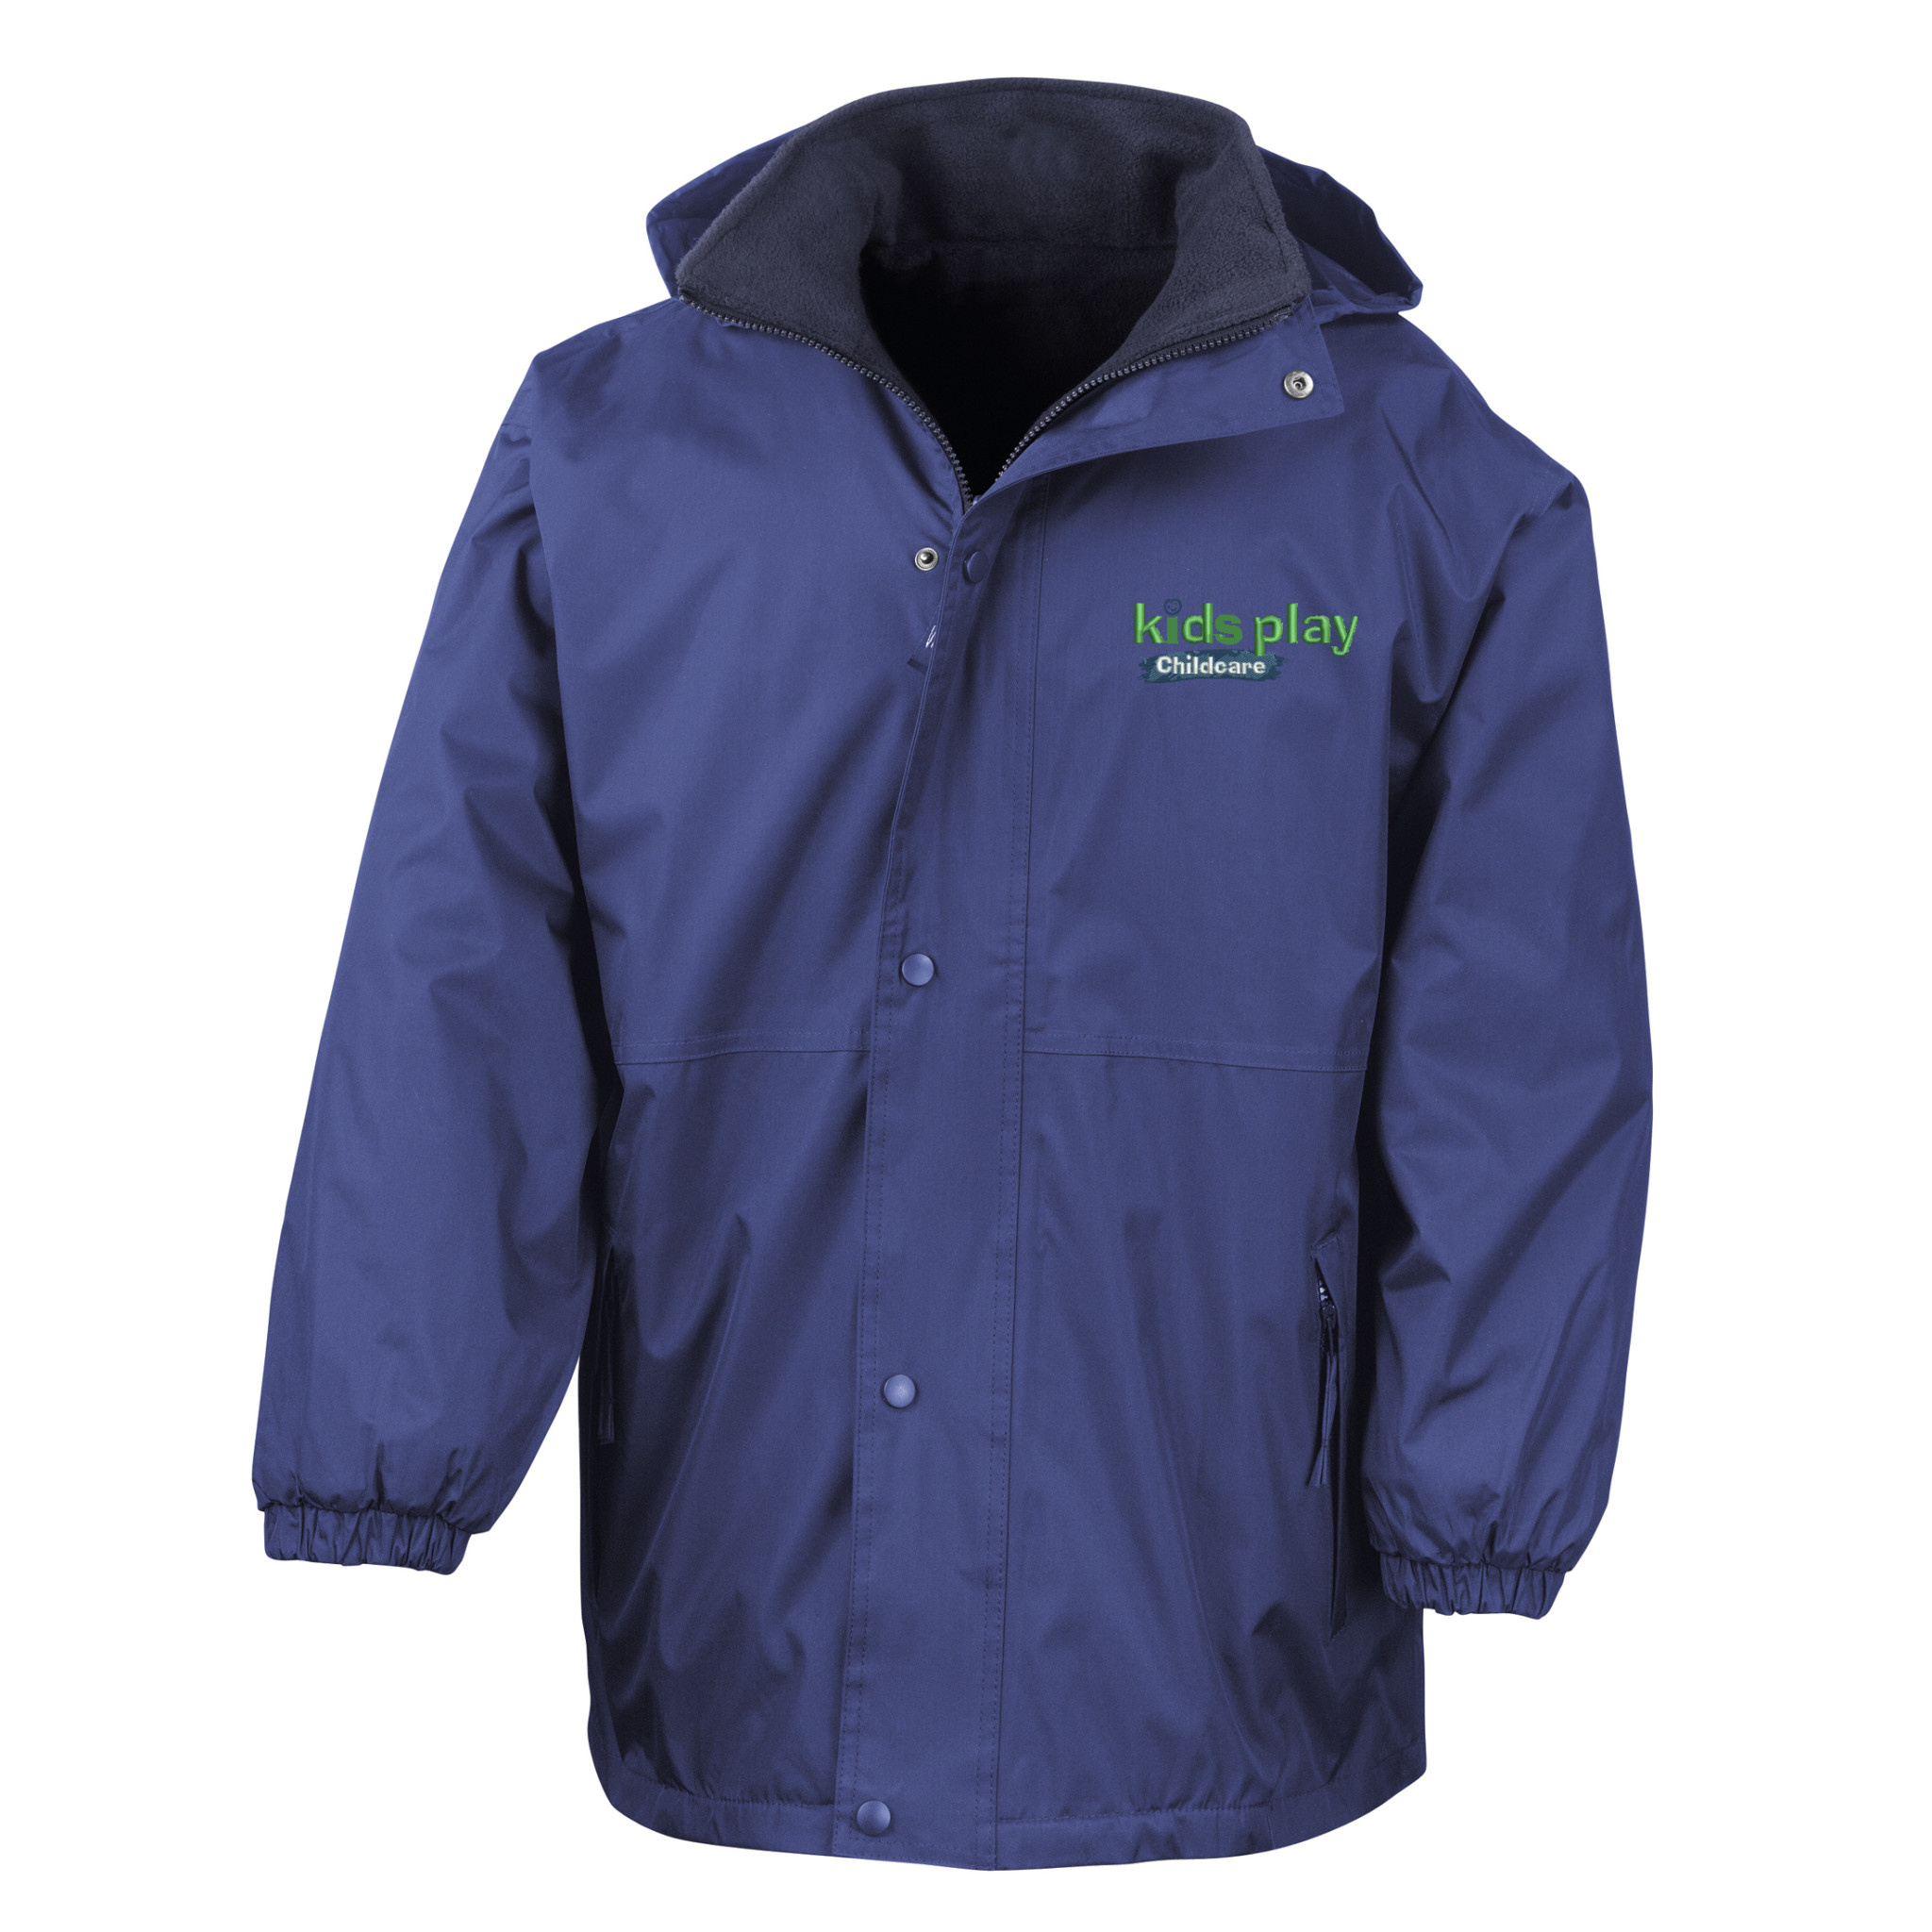 Premium Force Kids Play Adults Childcare Reversible Jacket